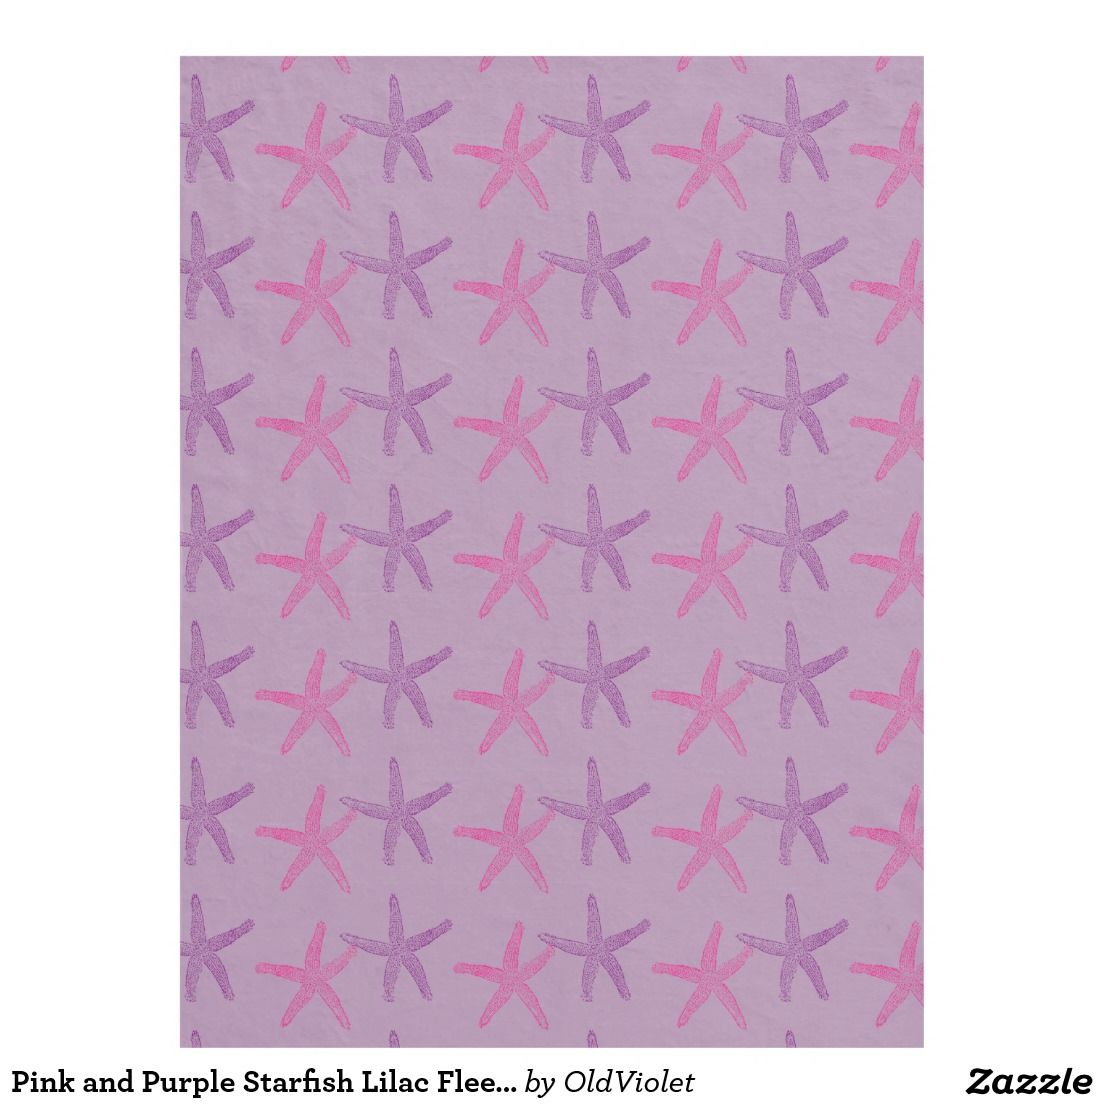 Pink and Purple Starfish Lilac Fleece Blanket - #oldviolet #windywinters #zazzle